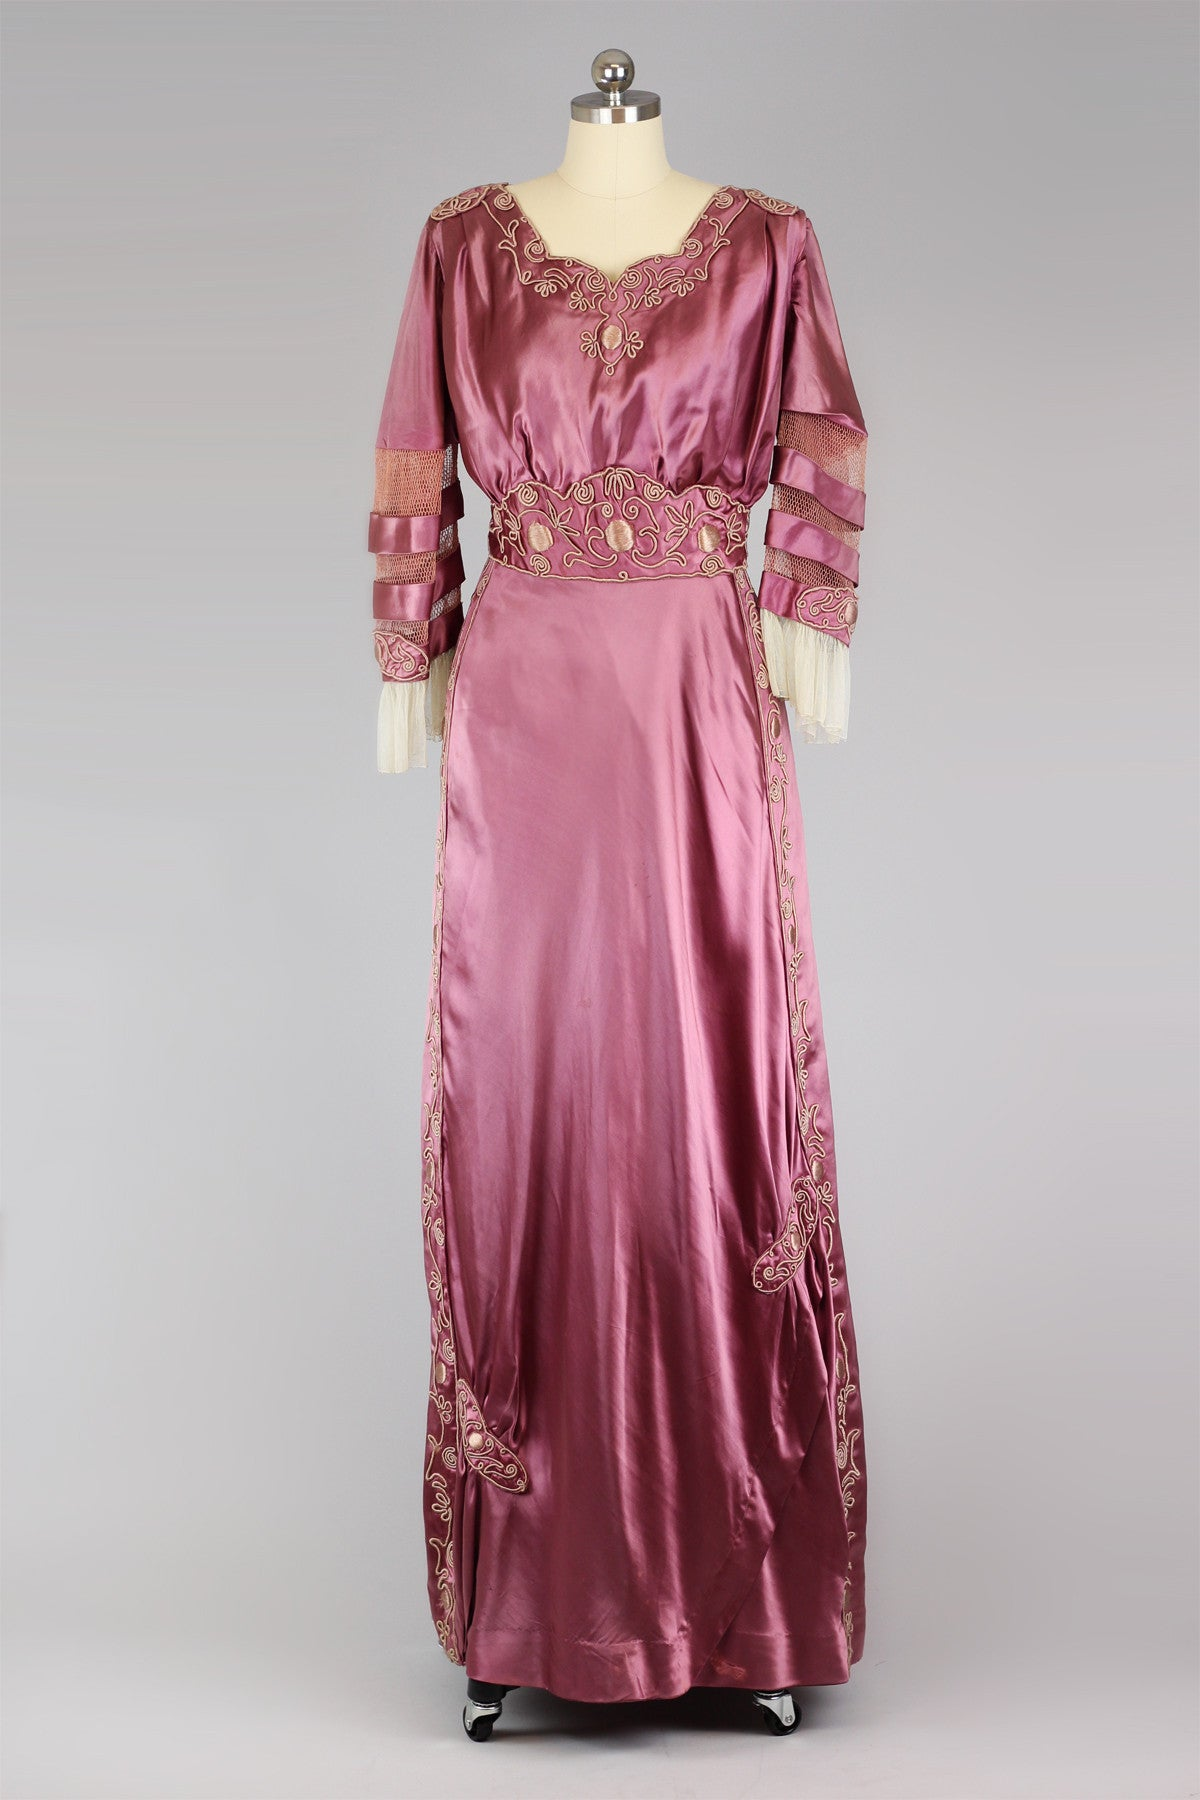 RESERVED Rare Antique Victorian Plum Satin Evening Ball Gown